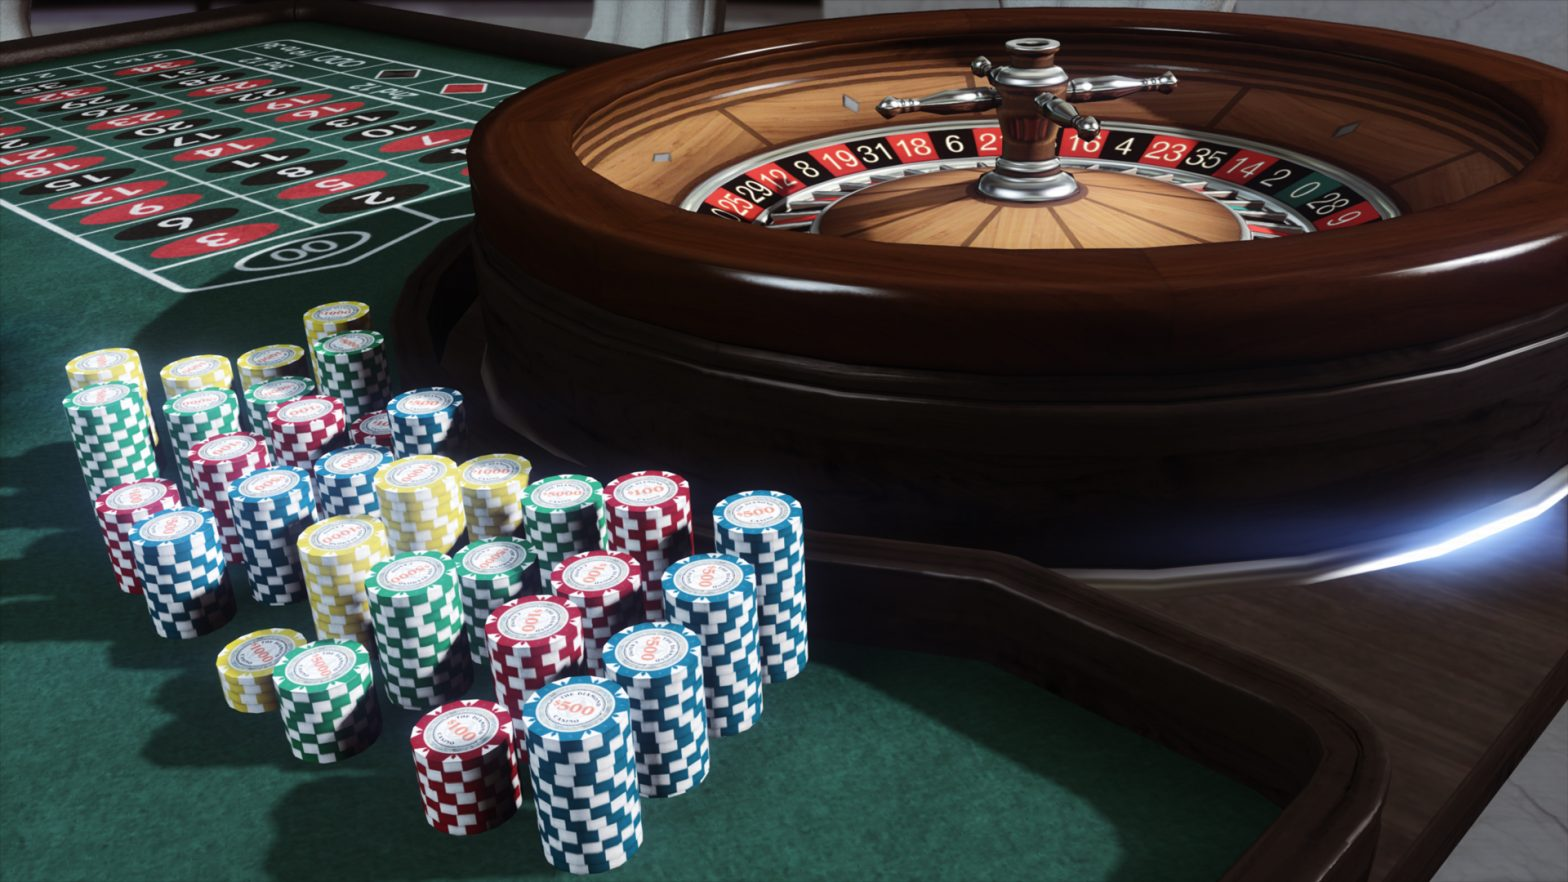 Why people prefer to gamble?